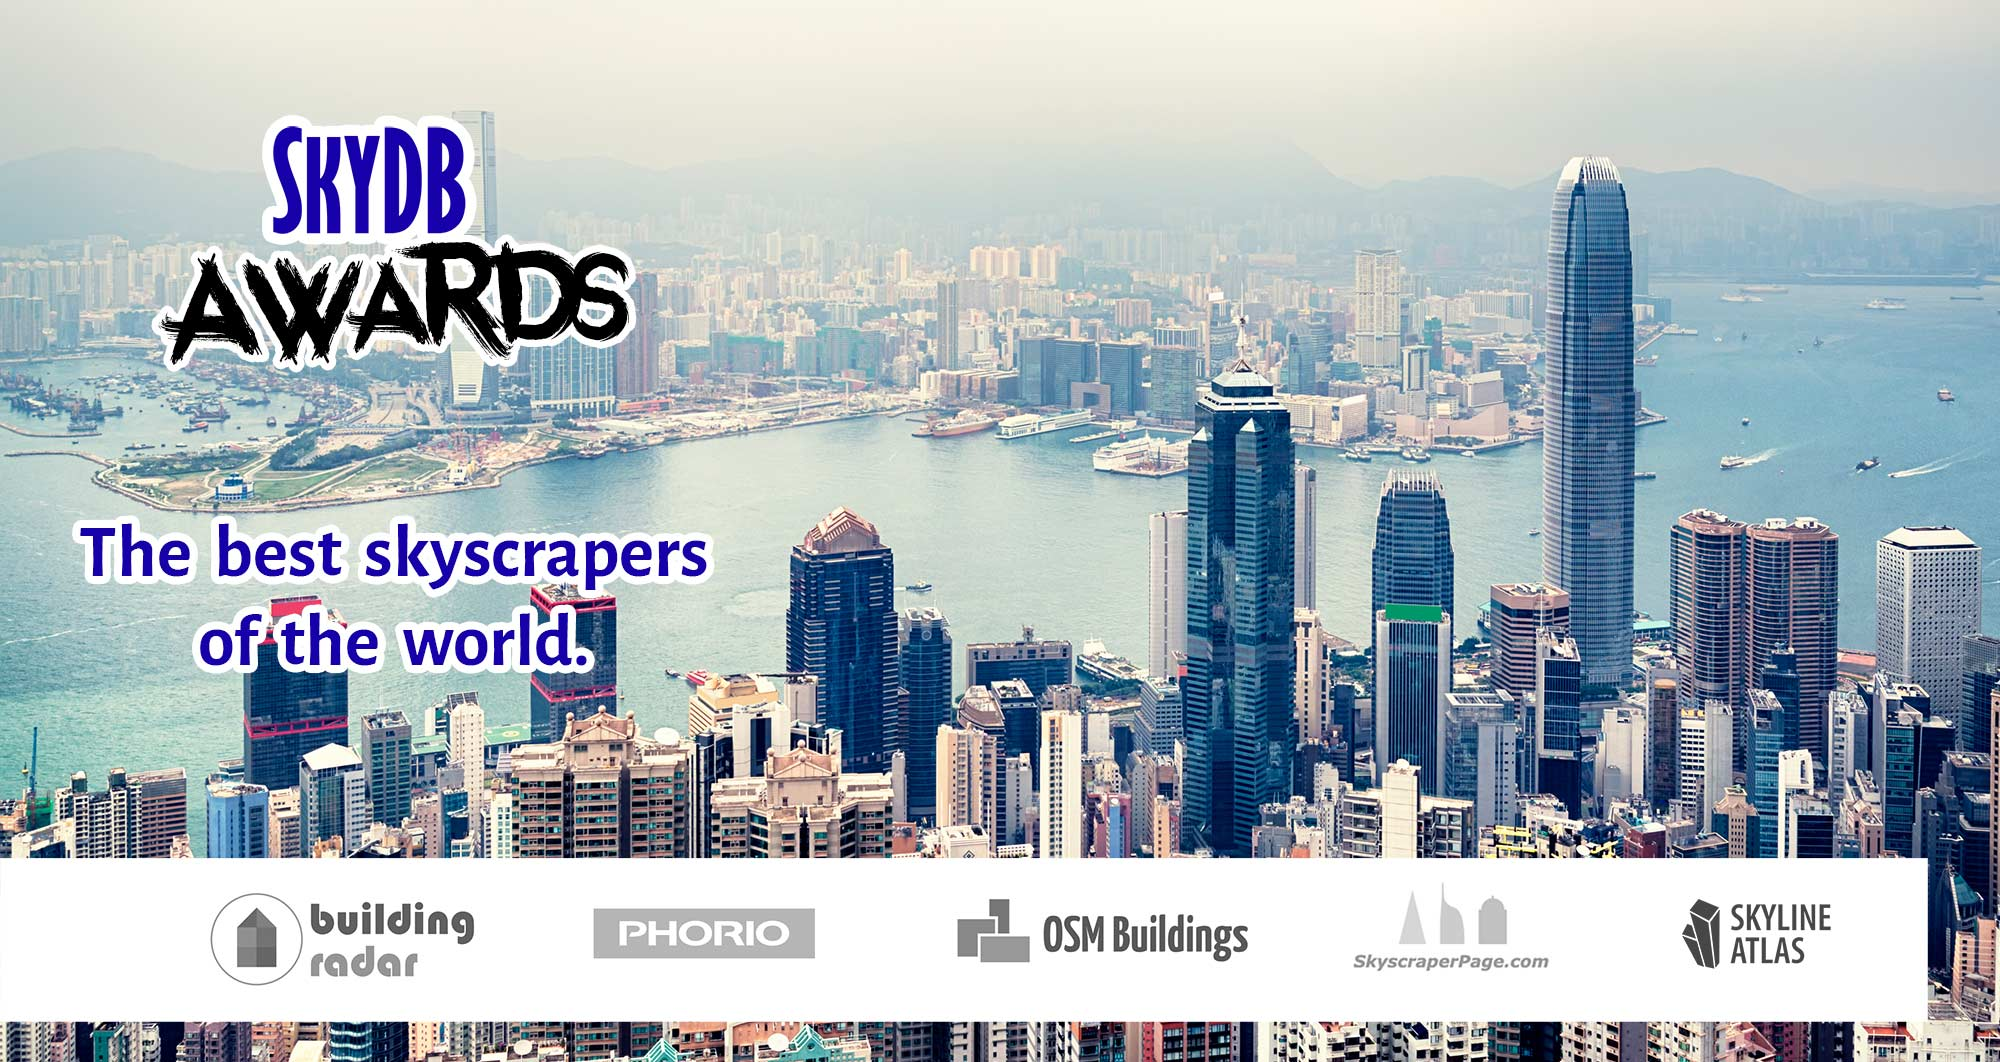 SkyDB Awards - The Best Skyscraper of the World